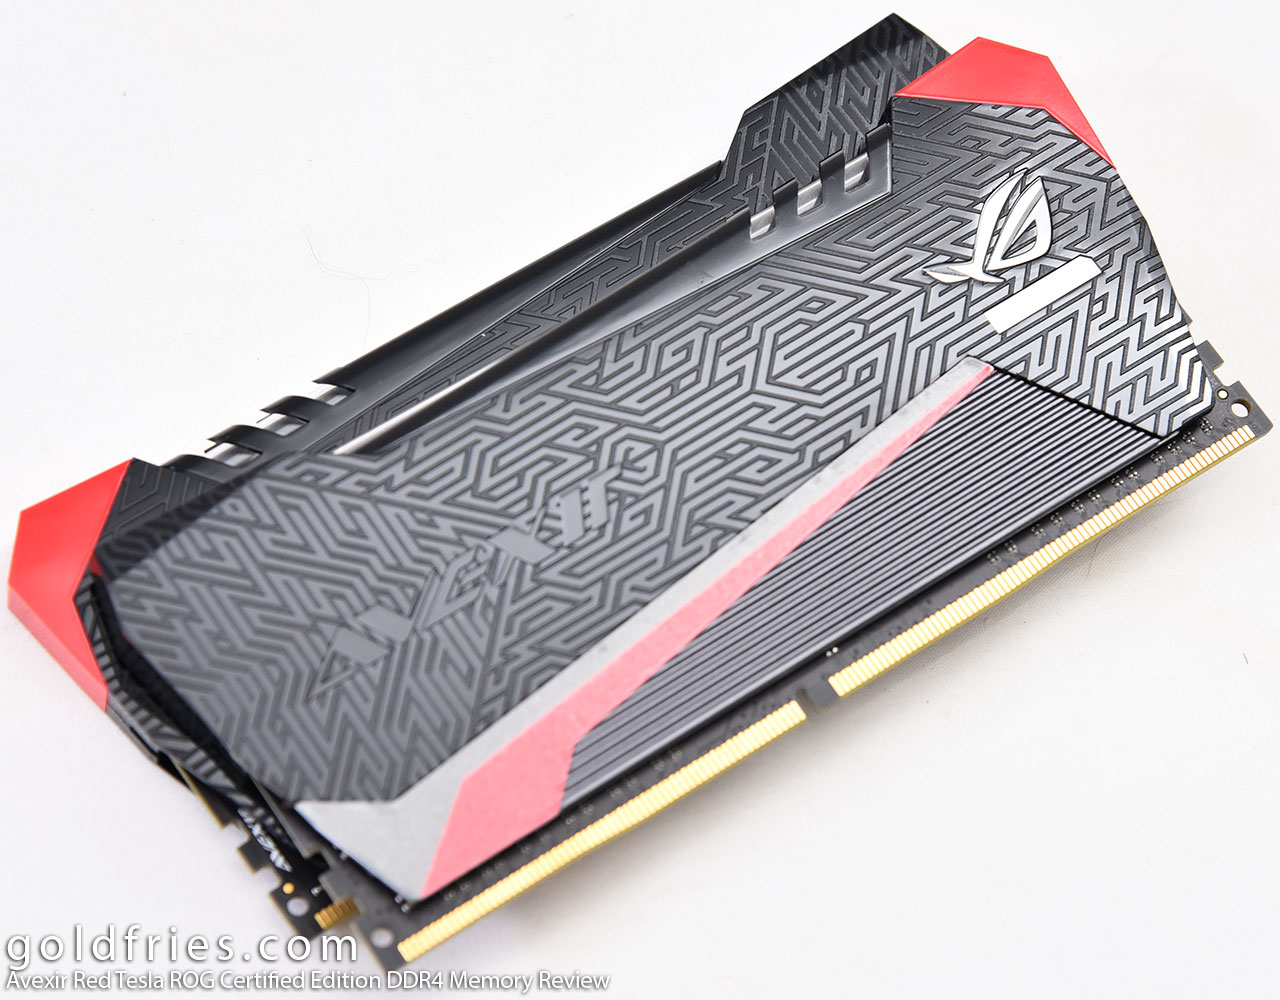 Avexir Red Tesla ROG Certified Edition DDR4 Memory Review